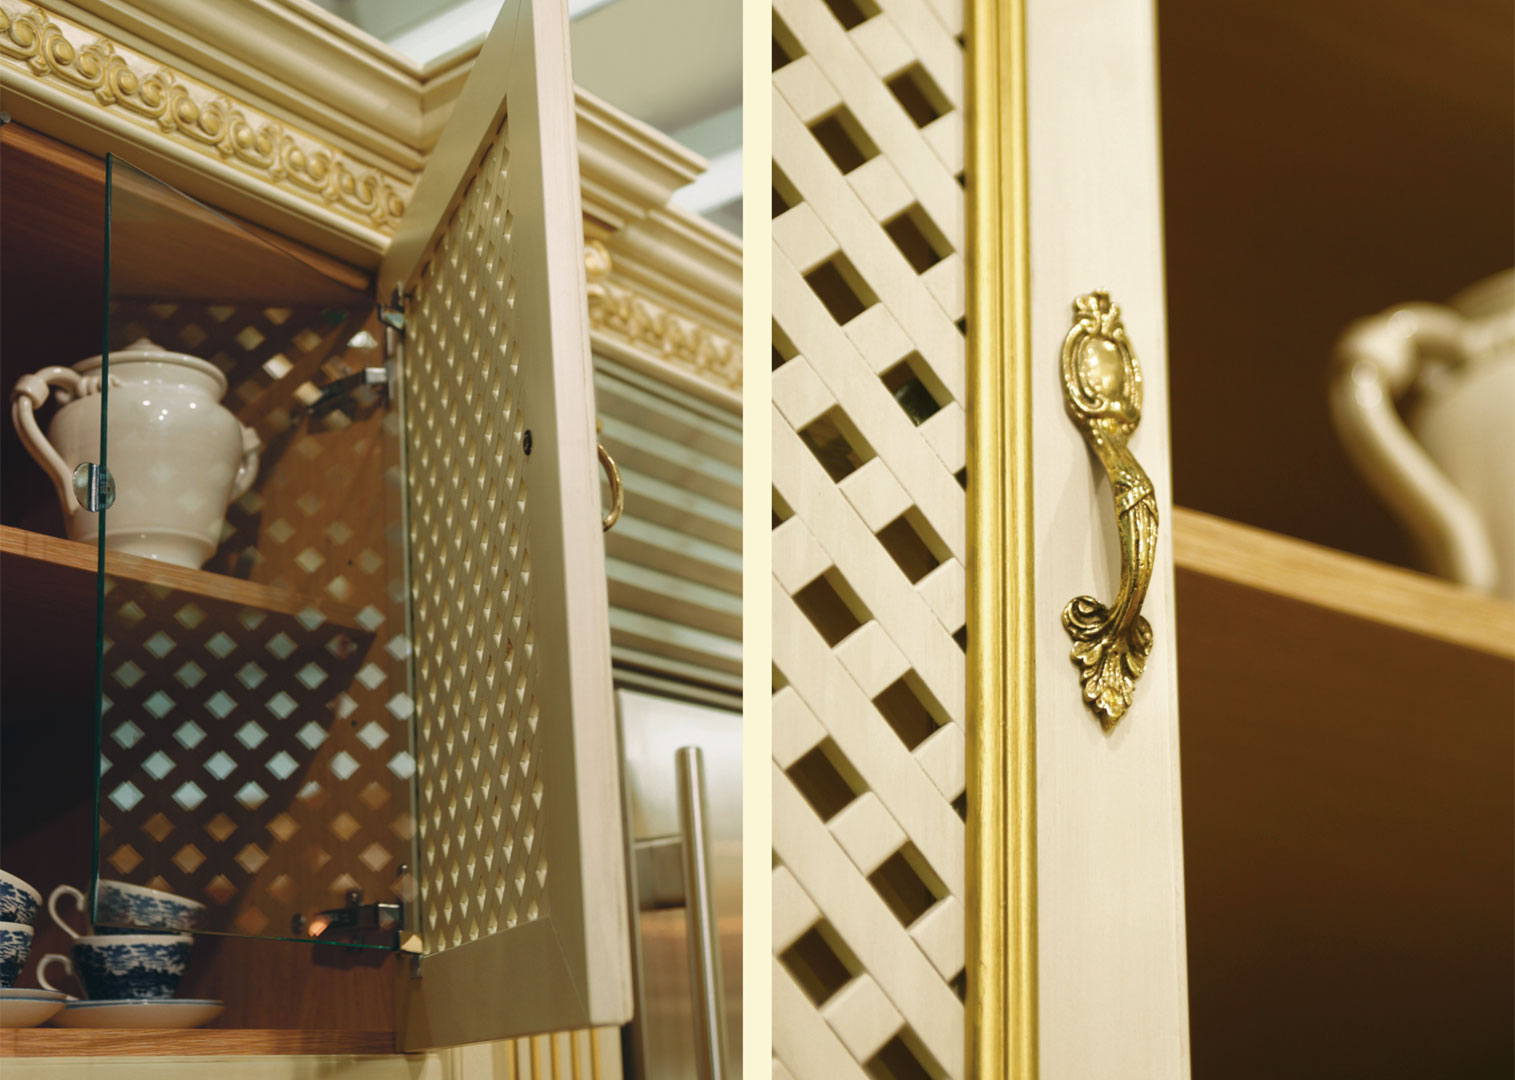 Royal Luxury features doors with grating and anti-dust protection